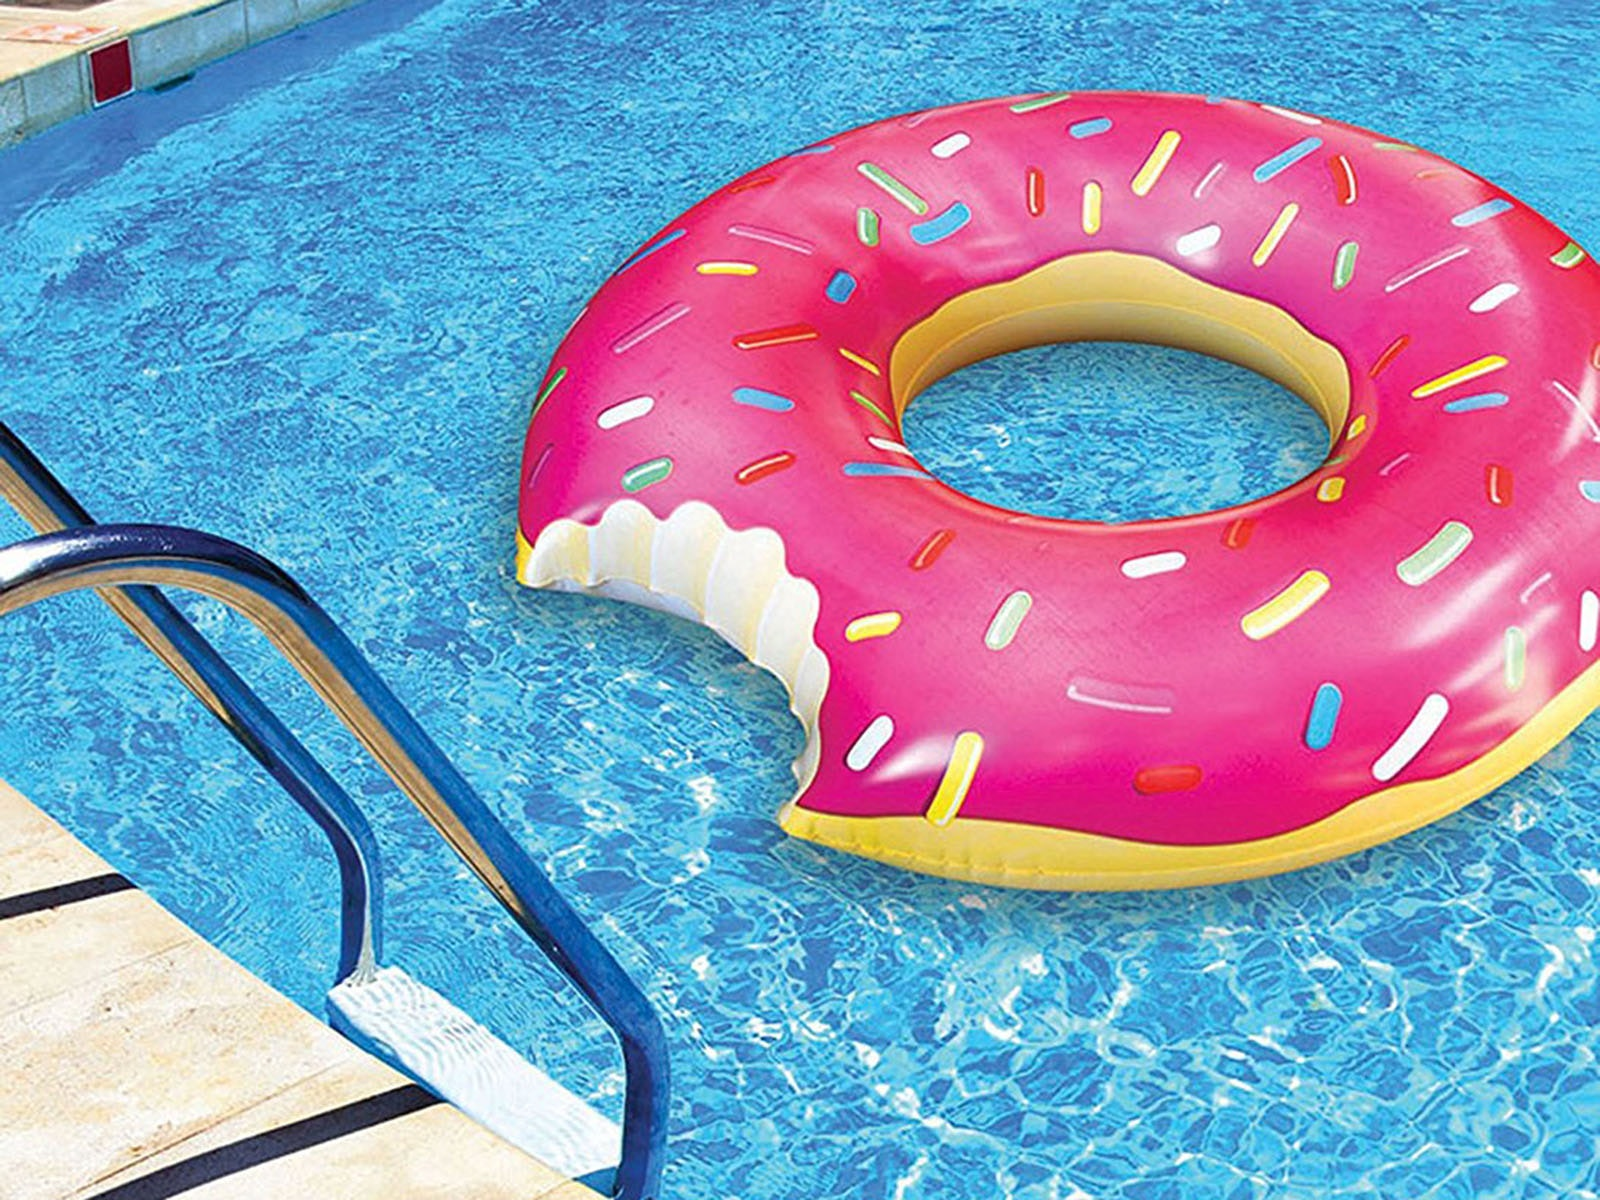 This super tasty pool float